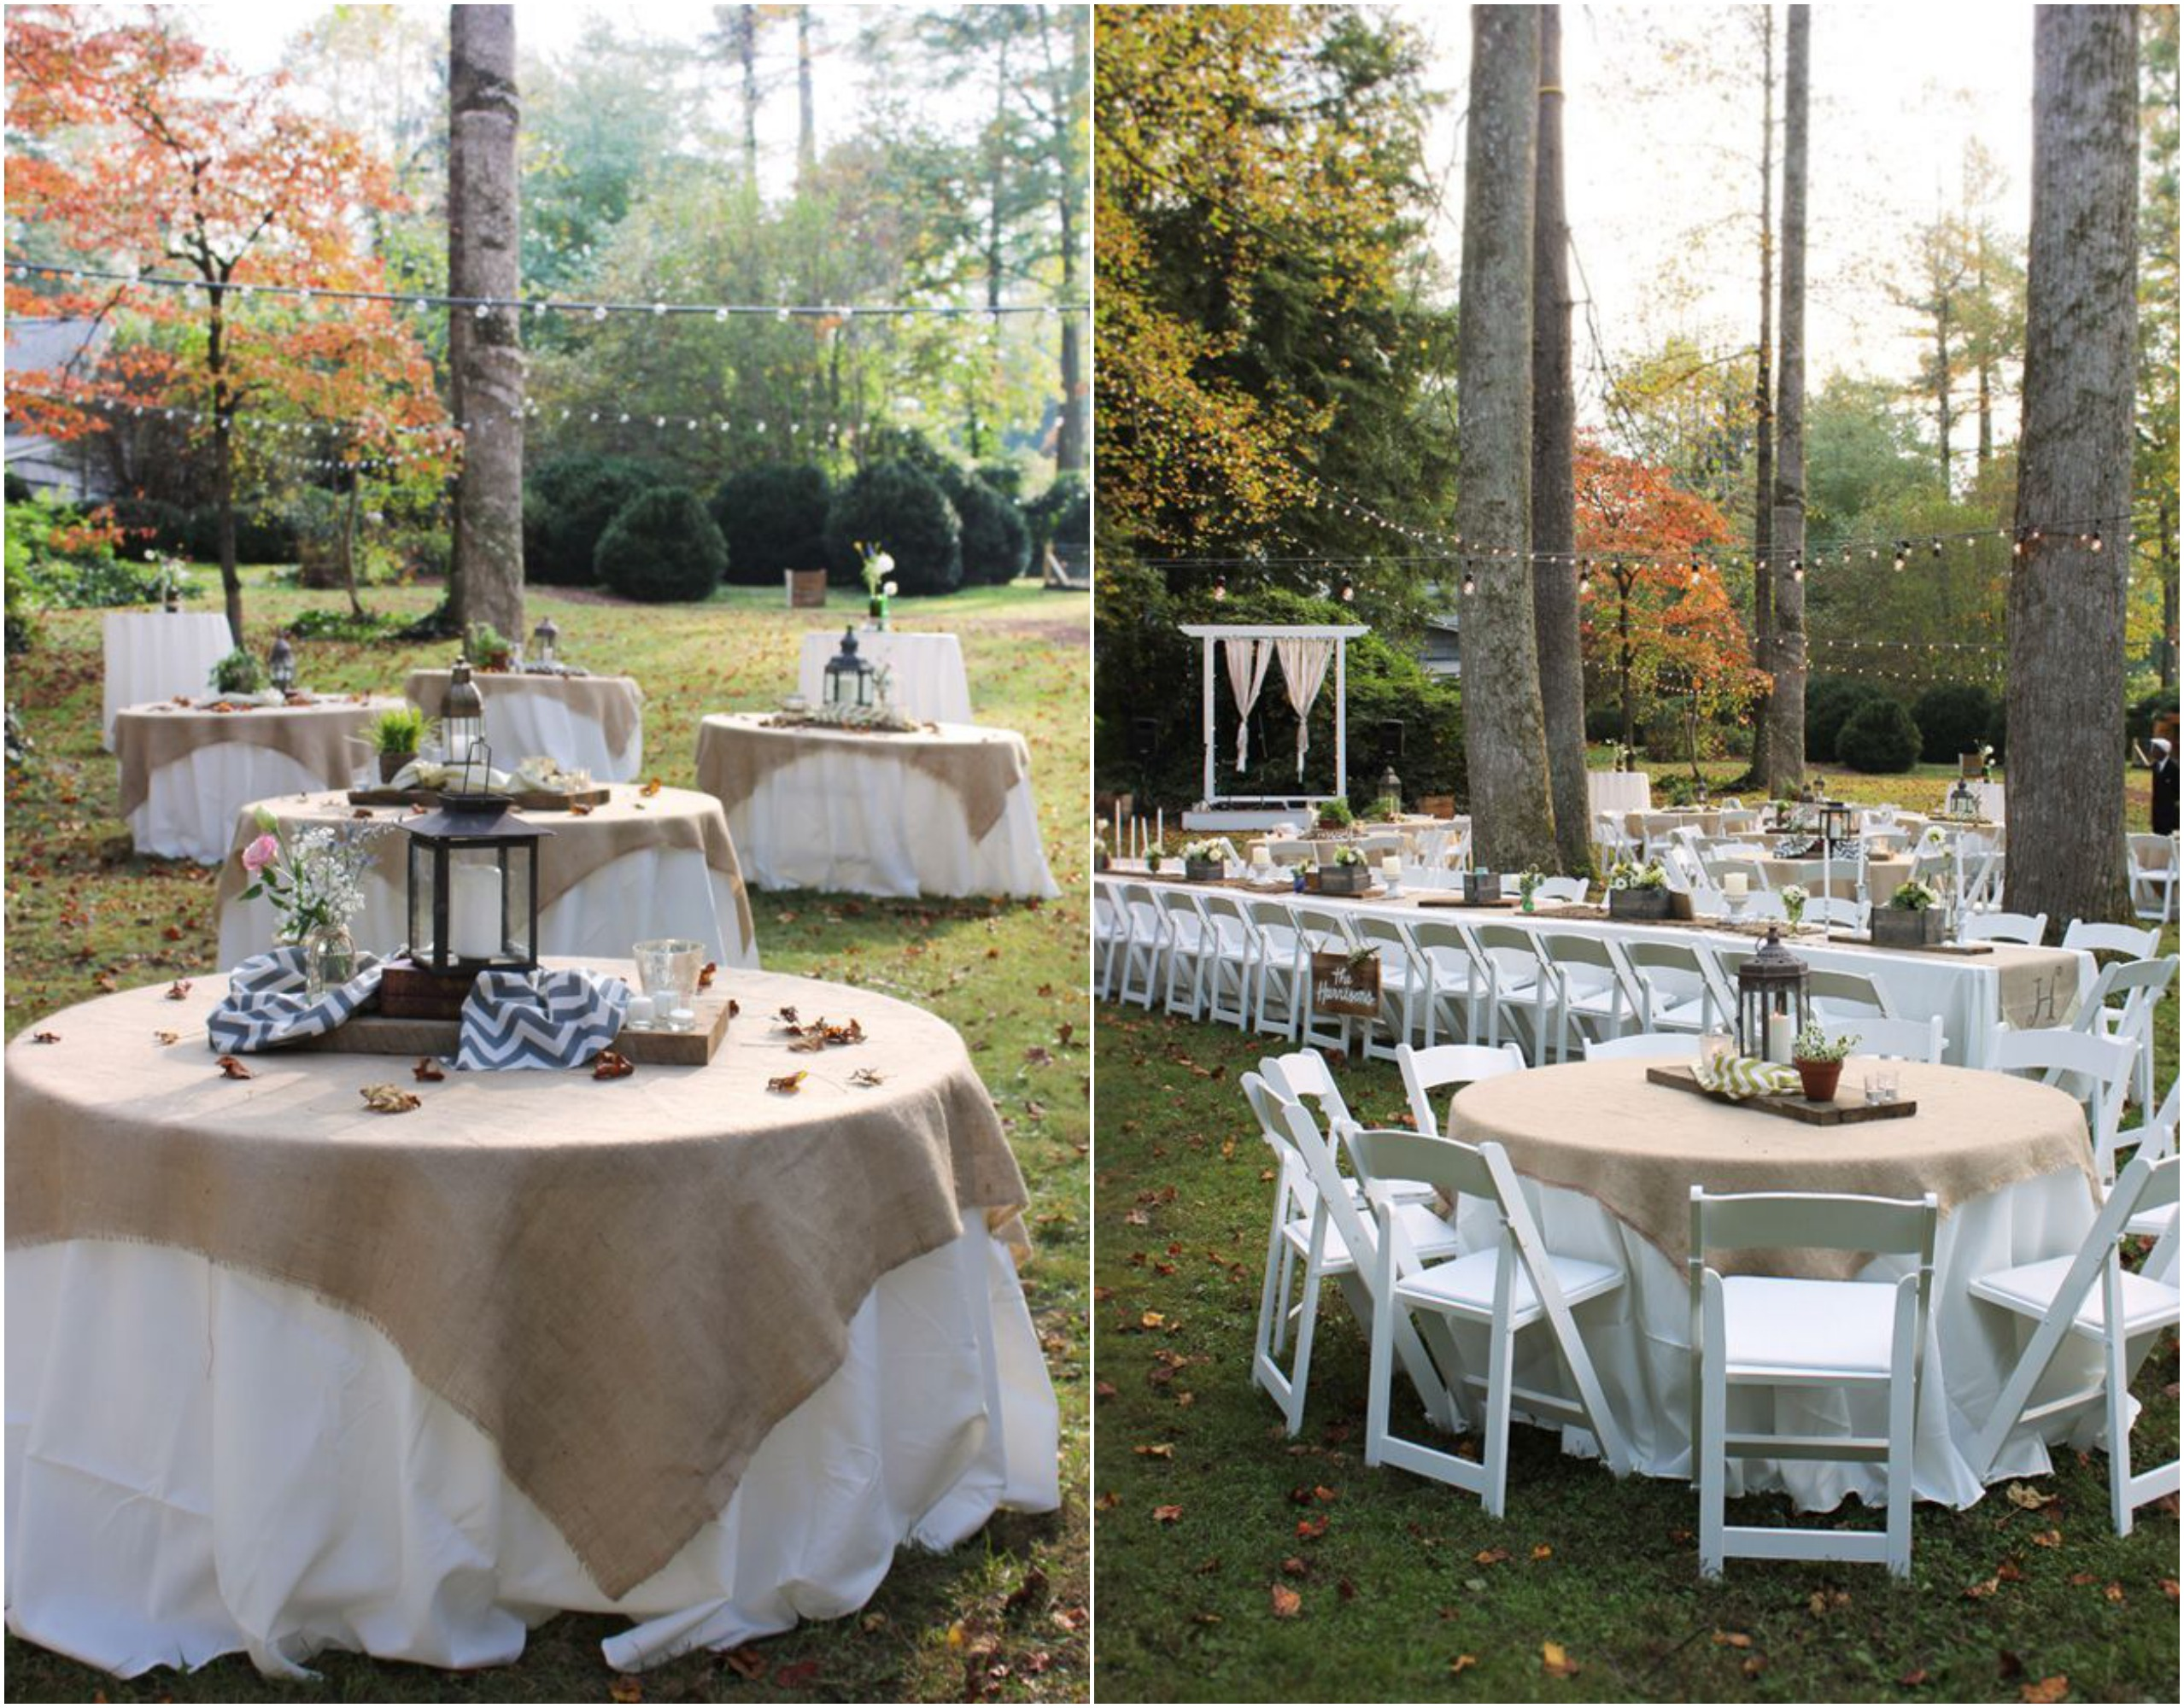 Outdoor Wedding Ideas: Noteable Expressions: 10 HOT WEDDING TRENDS FOR 2014